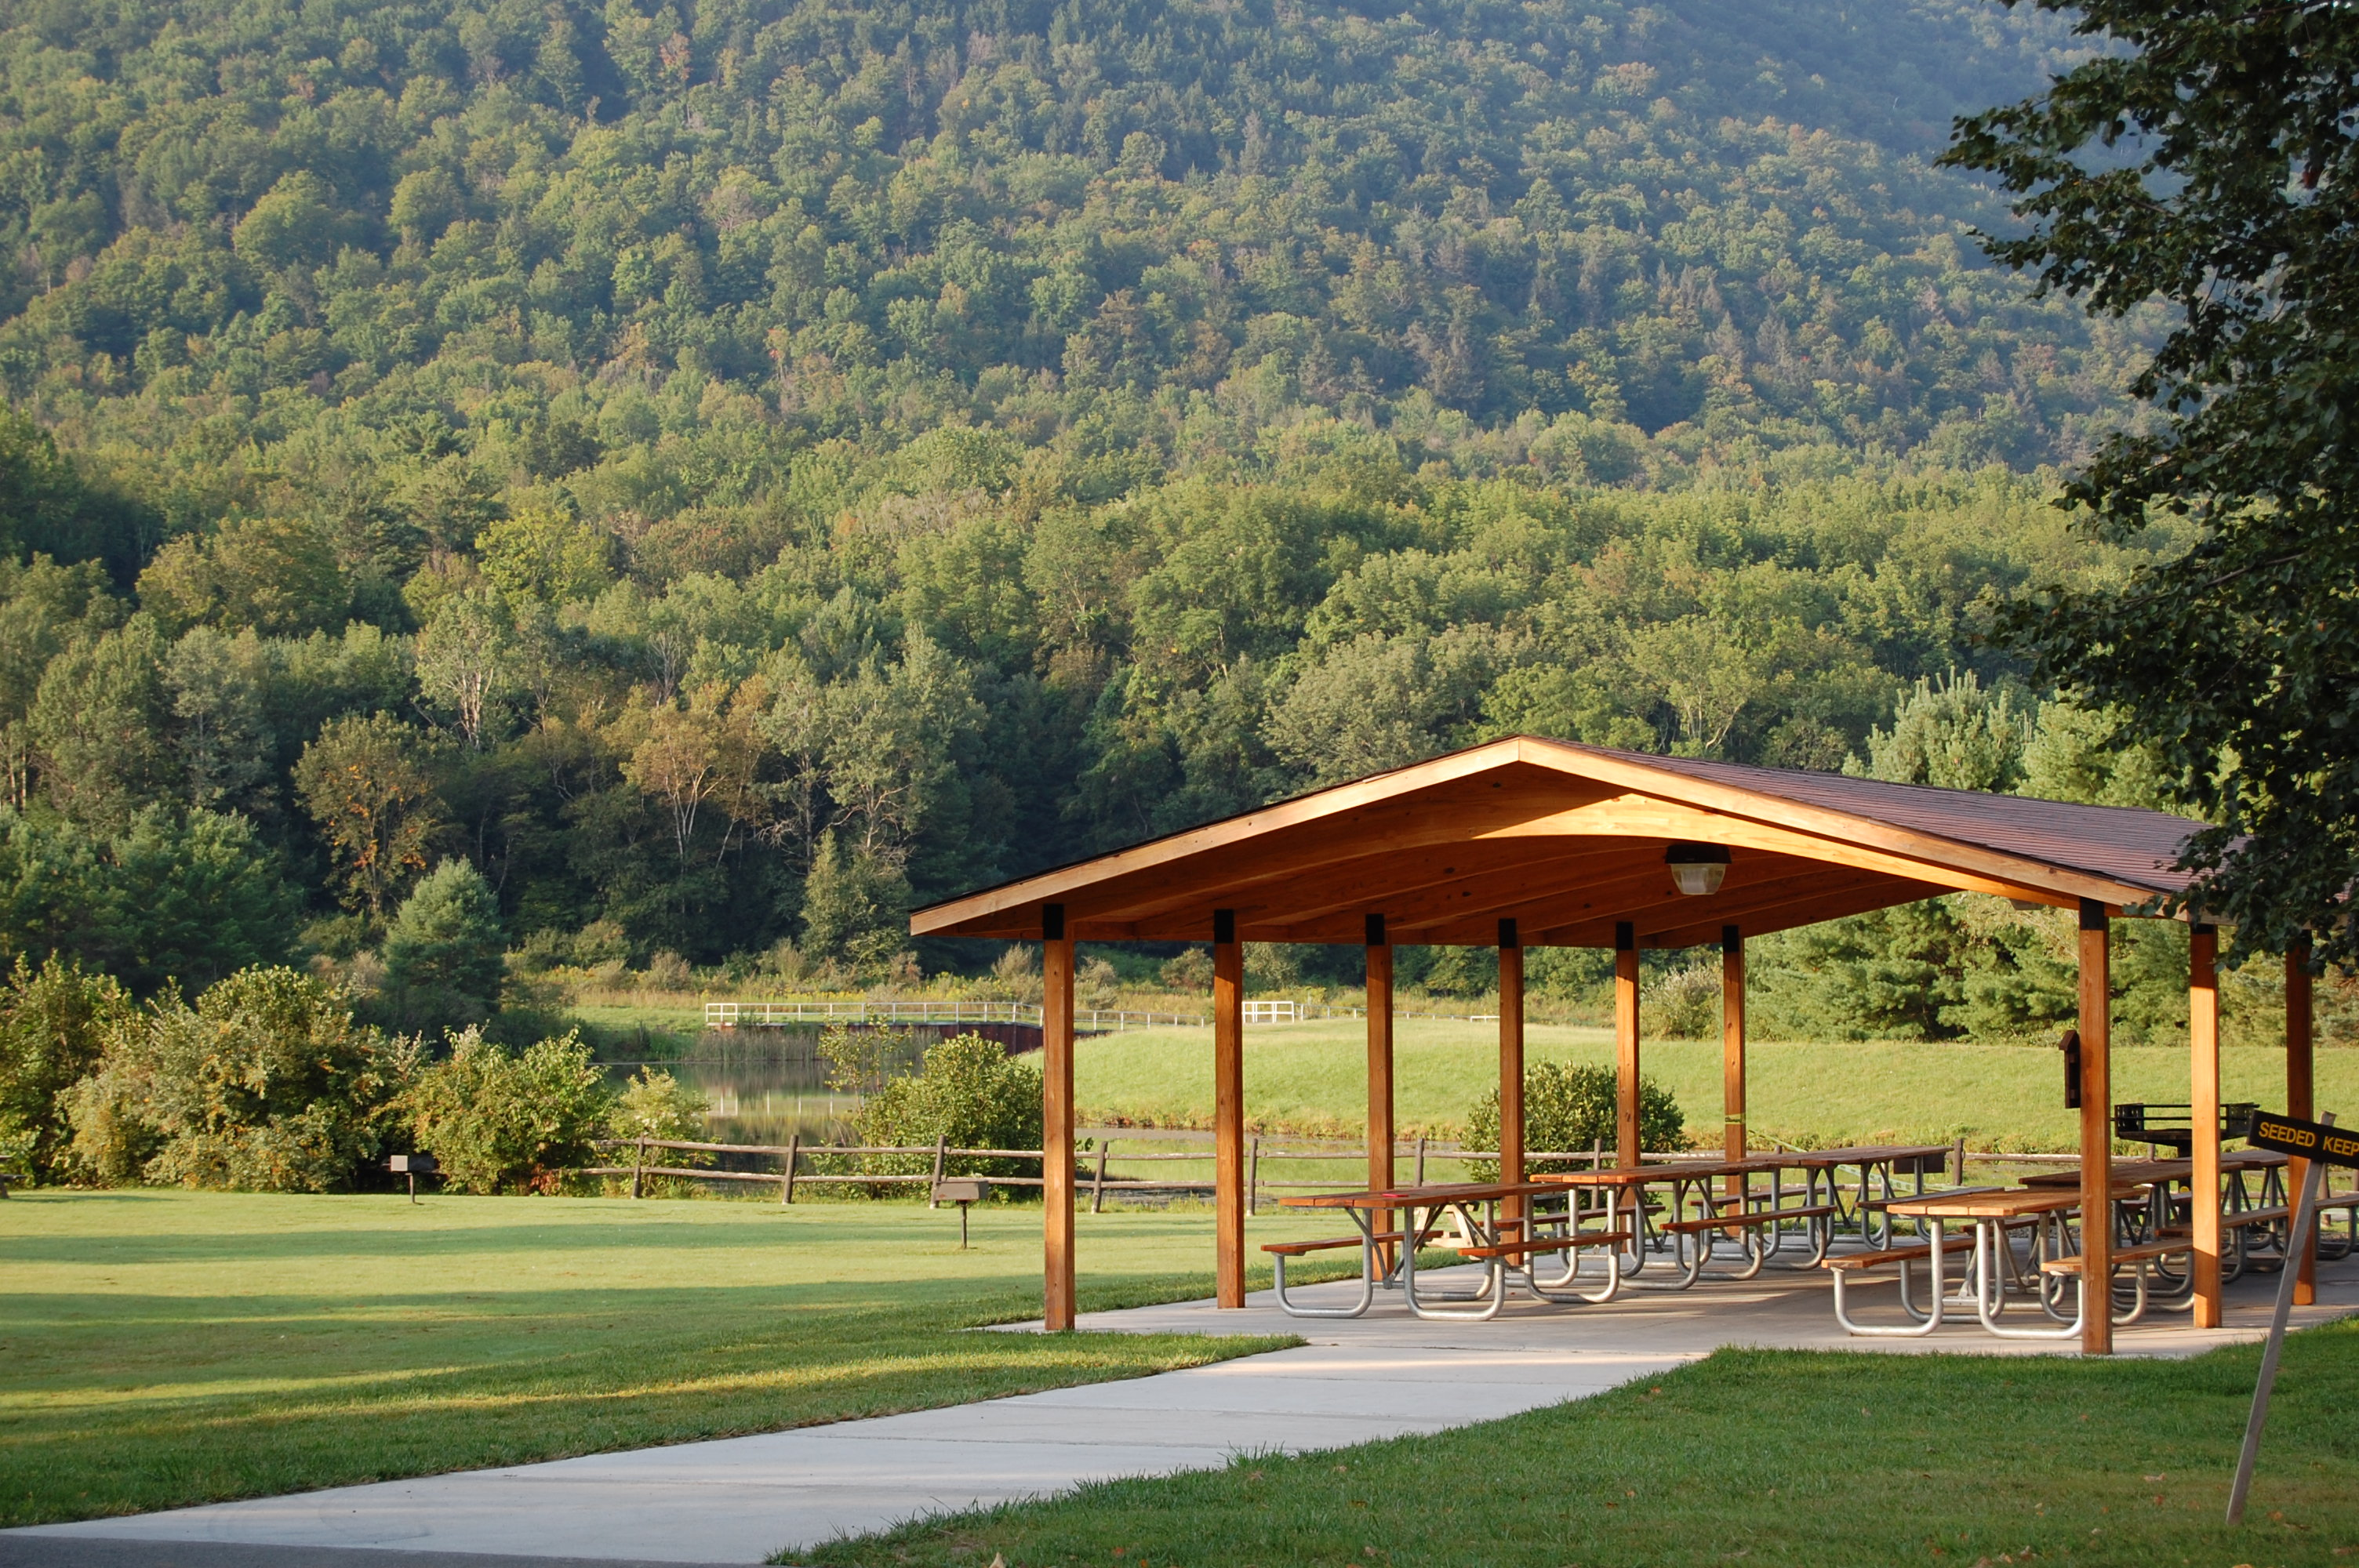 Kenneth L. Wilson Campground and Day Use Area, Mount Tremper - source - website_0